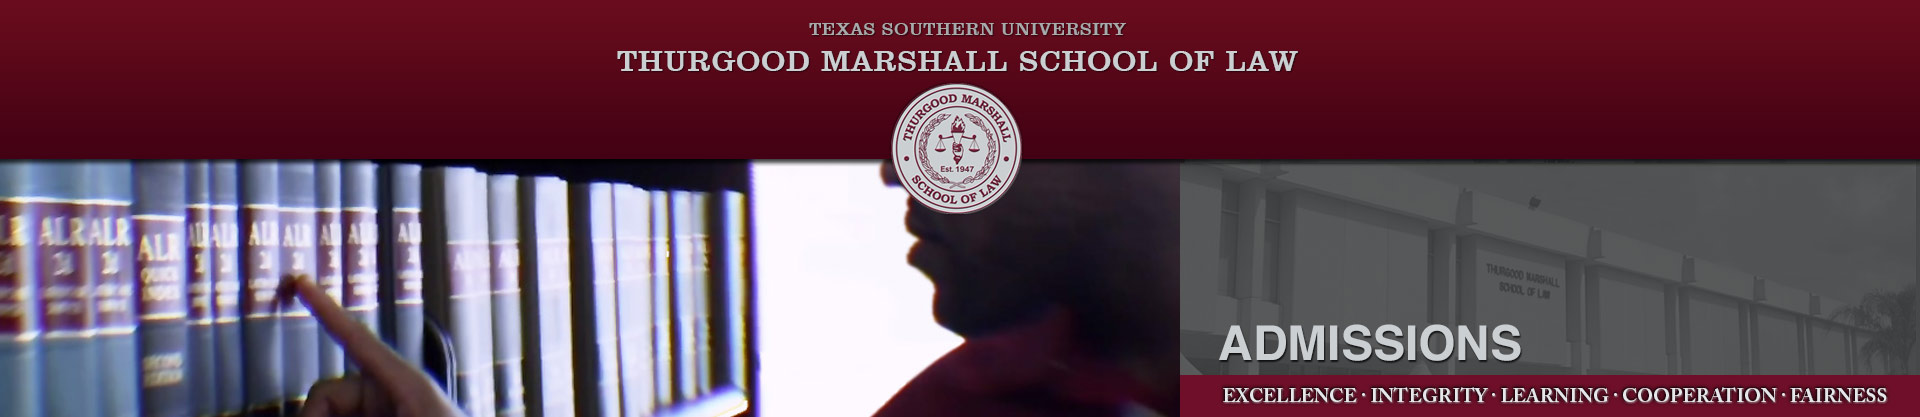 academics at thurgood marshall school of law in houston texas dannnye k holley dean and professor of law